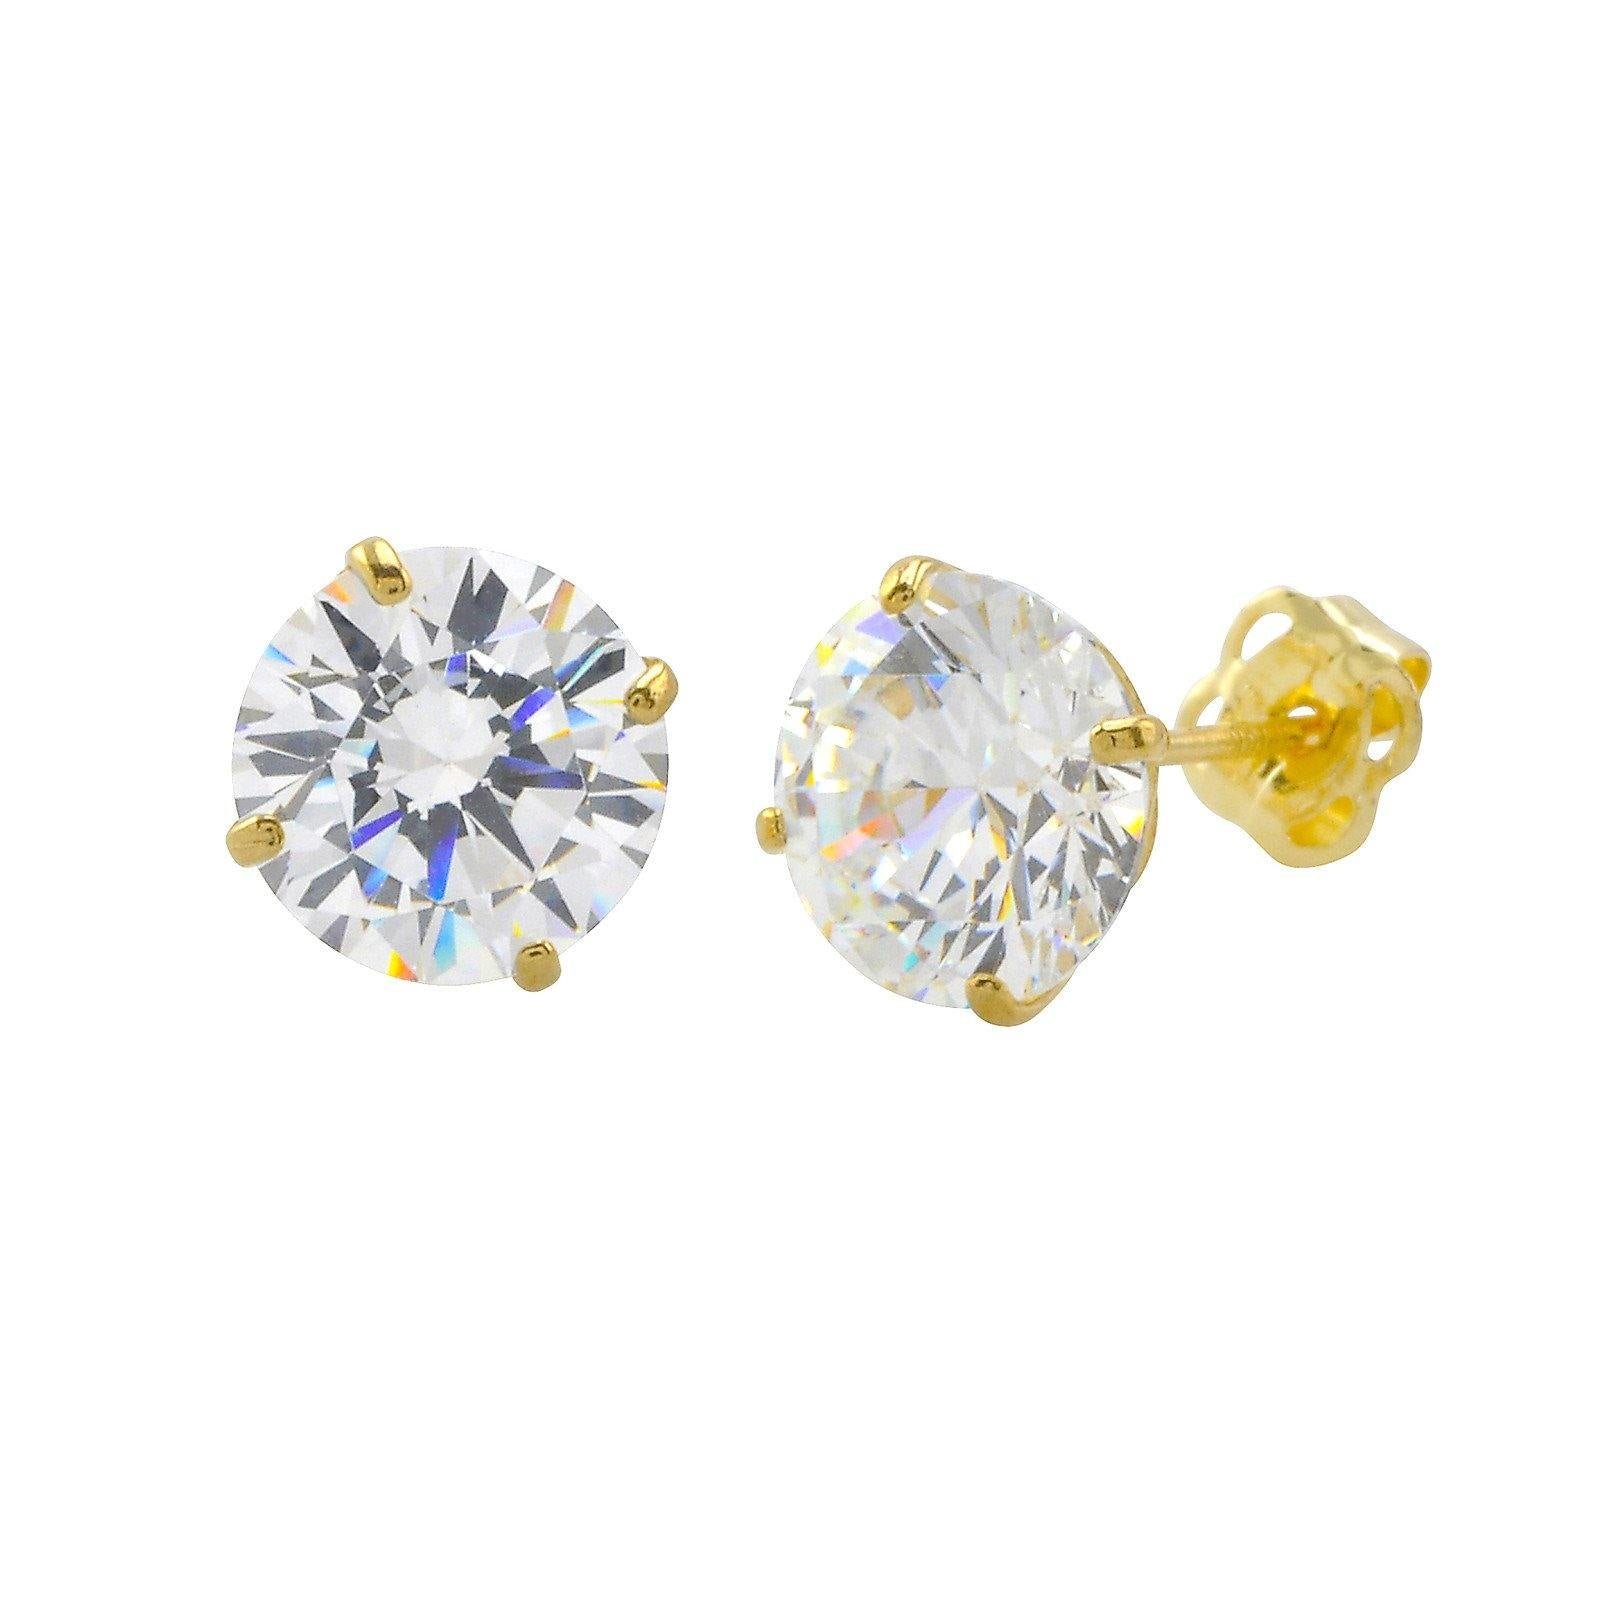 0c61e8b71 10k Yellow Gold Round Clear Cubic Zirconia CZ Stud Earrings Basket Setting